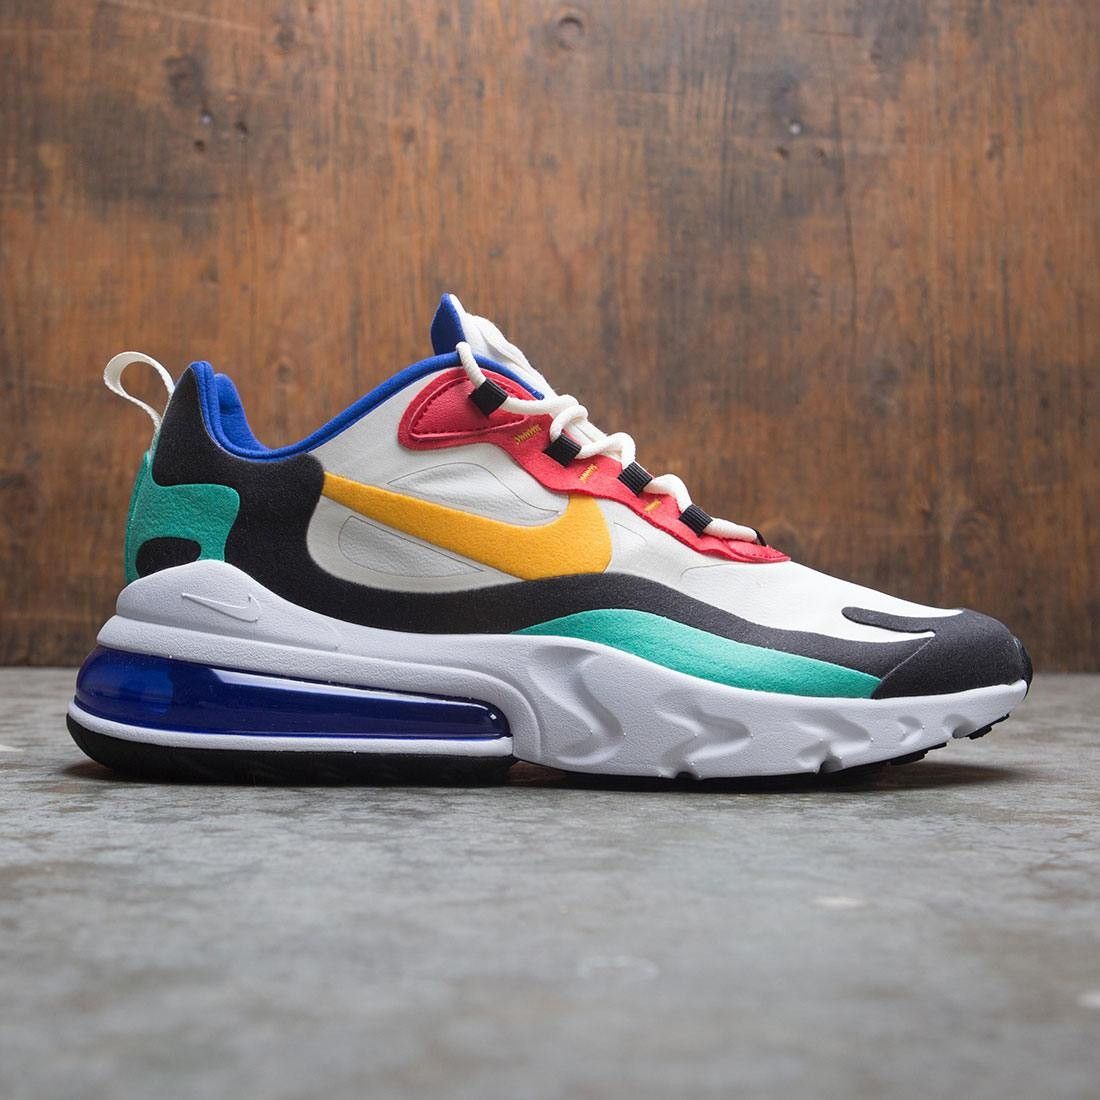 Air Max 270 React Bauhaus Art Phantom University Gold